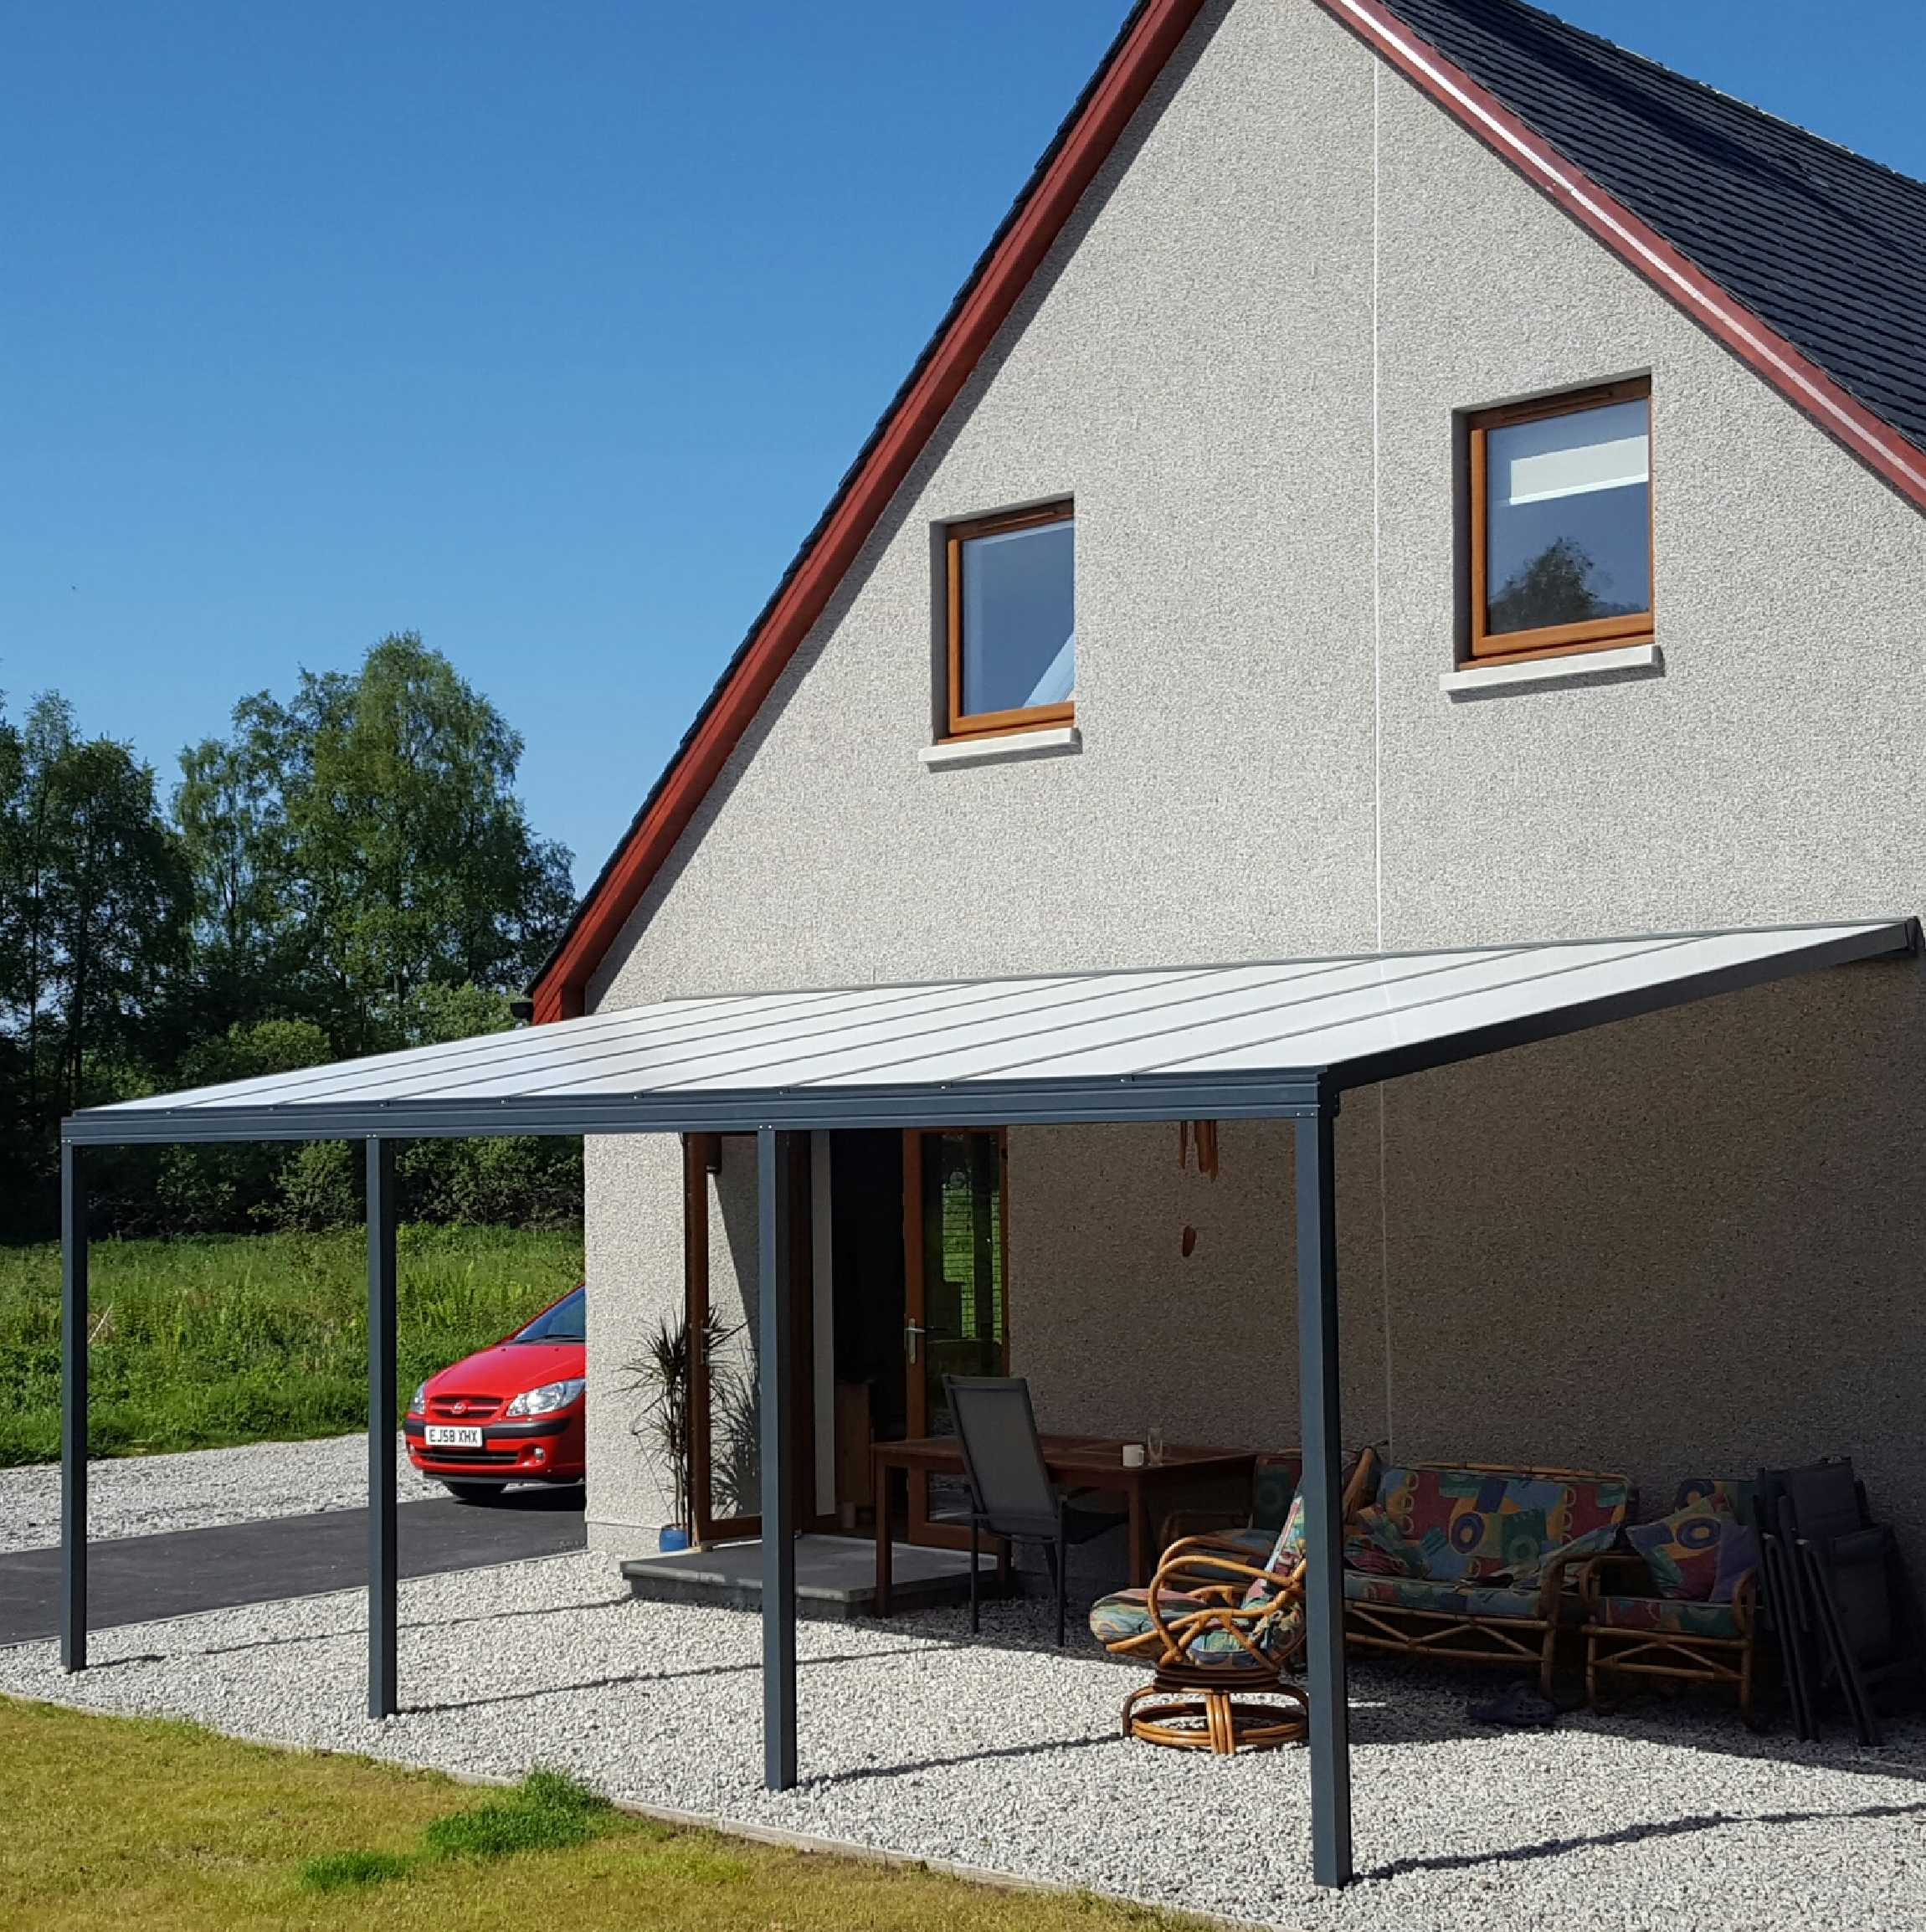 Great selection of Omega Smart Lean-To Canopy, Anthracite Grey, 16mm Polycarbonate Glazing - 6.3m (W) x 2.5m (P), (4) Supporting Posts